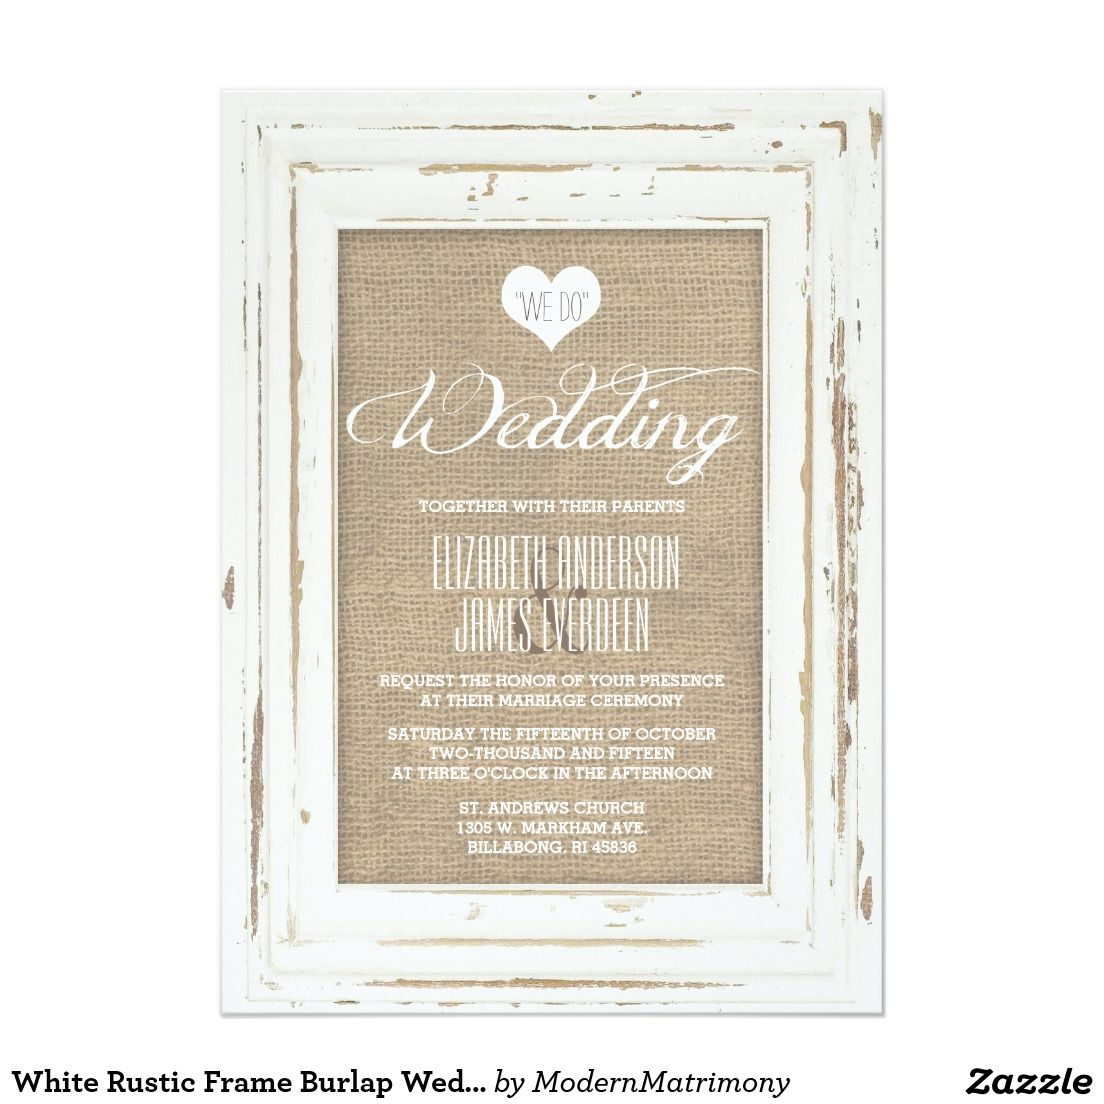 White Rustic Frame Burlap Wedding Invitation | Framed burlap ...